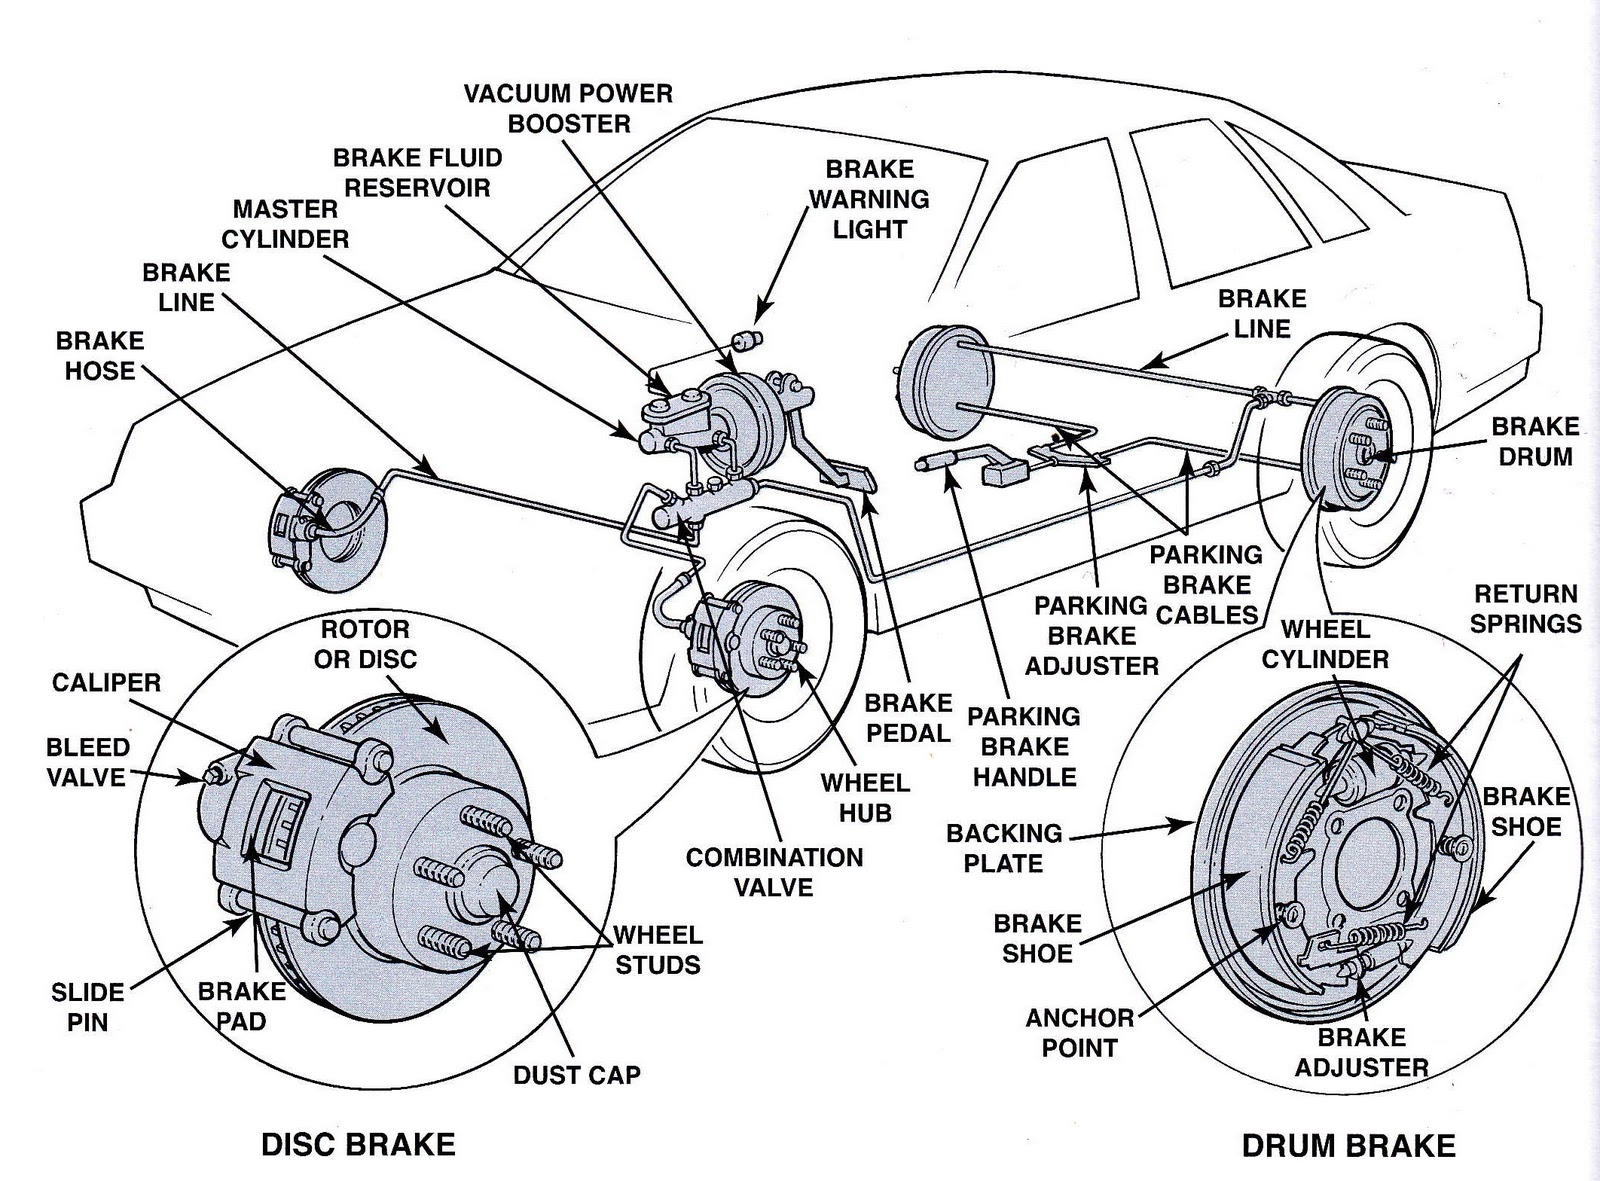 Fundamental Of Braking System on 2000 gmc parts diagram